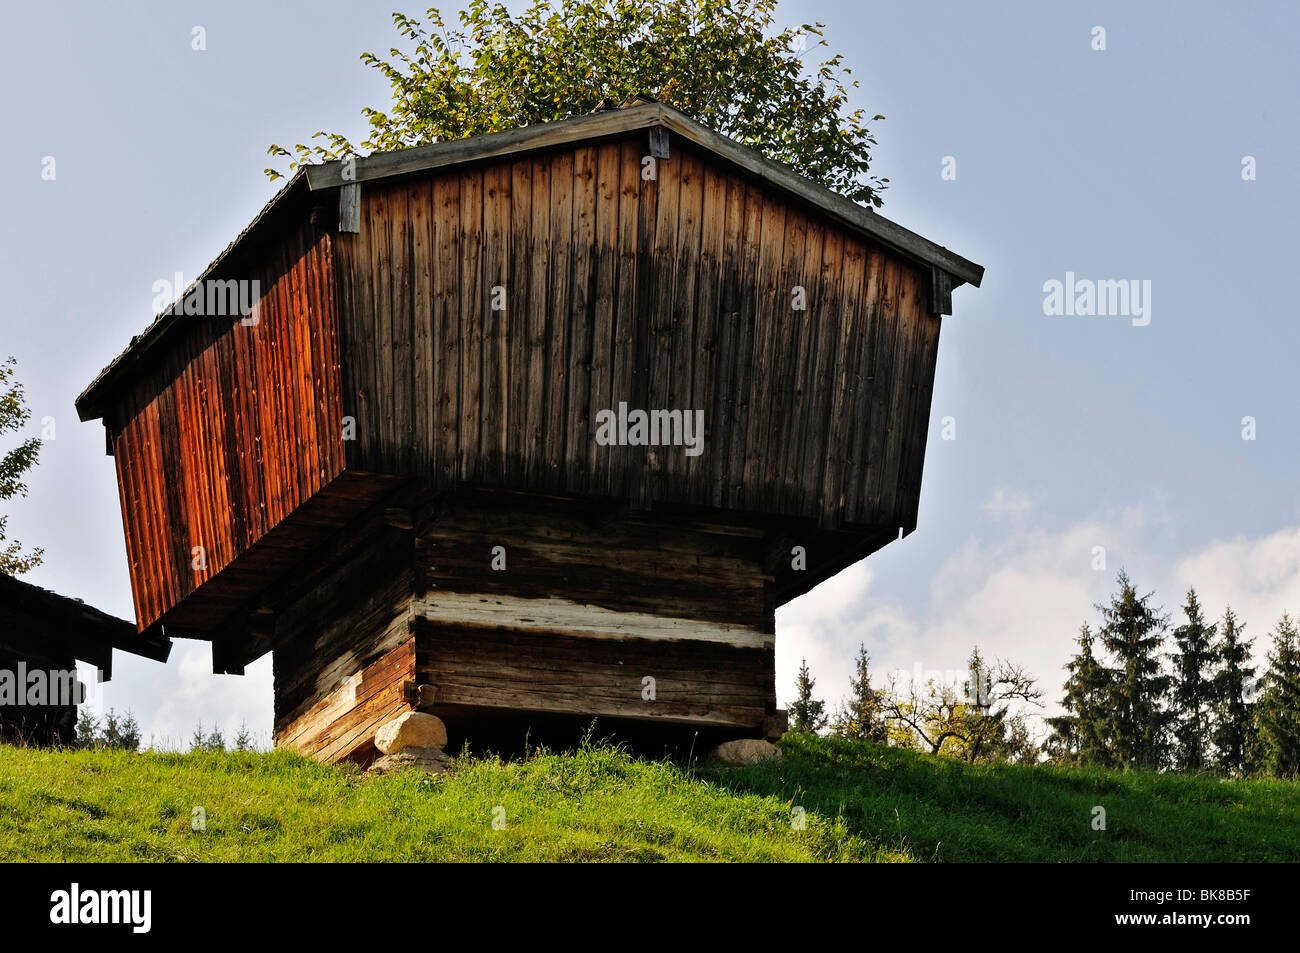 Granary from Ramsau, Glentleiten open-air museum, Bavaria, Germany, Europe - Stock Image